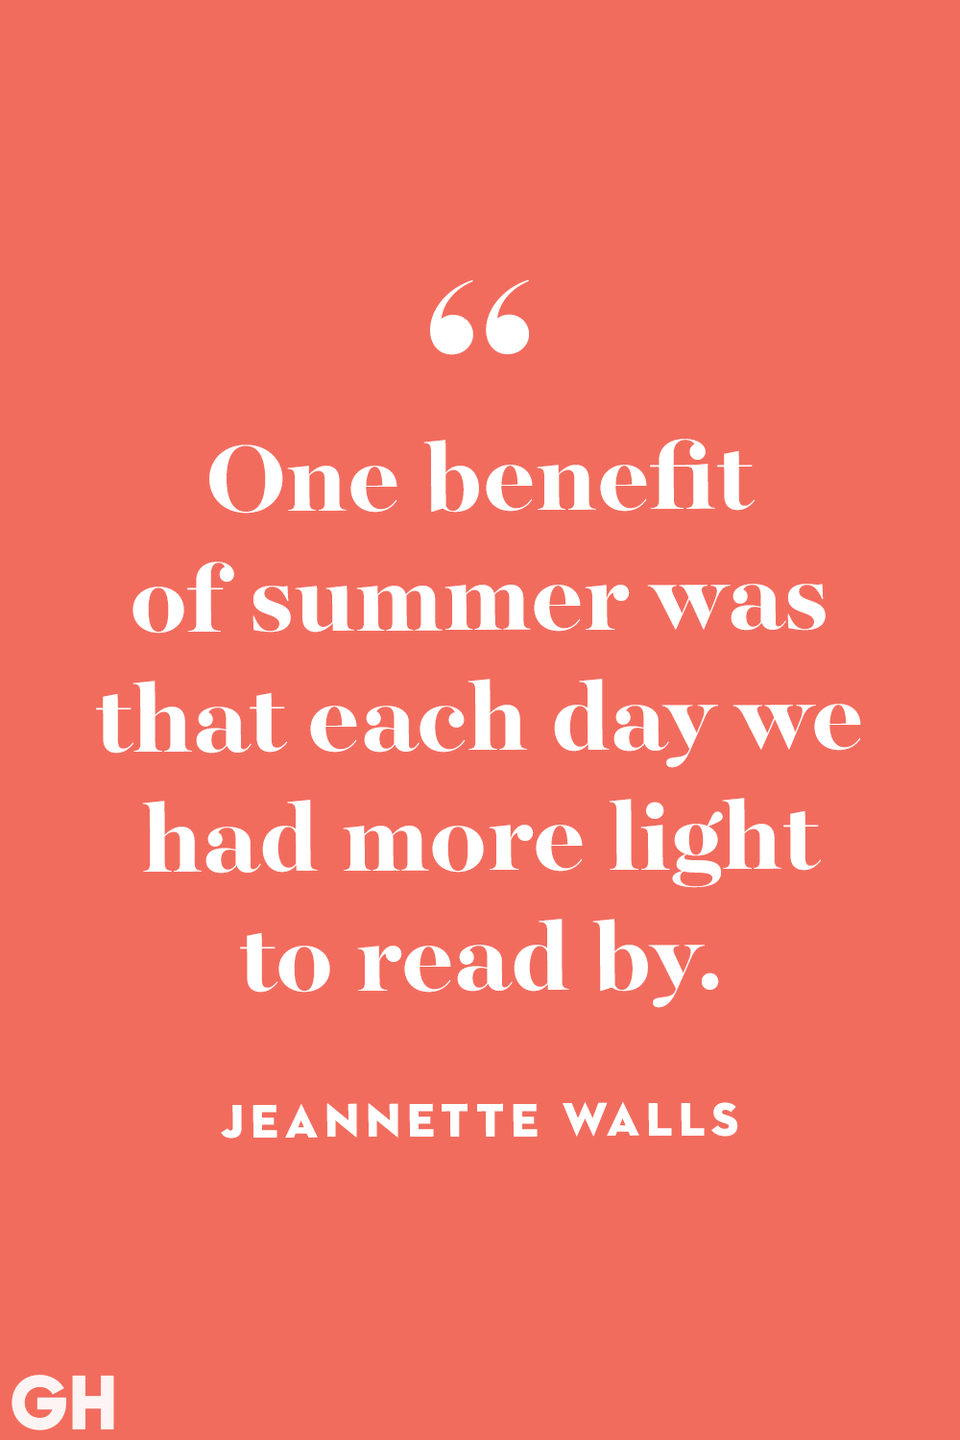 <p>One benefit of summer was that each day we had more light to read by.</p>